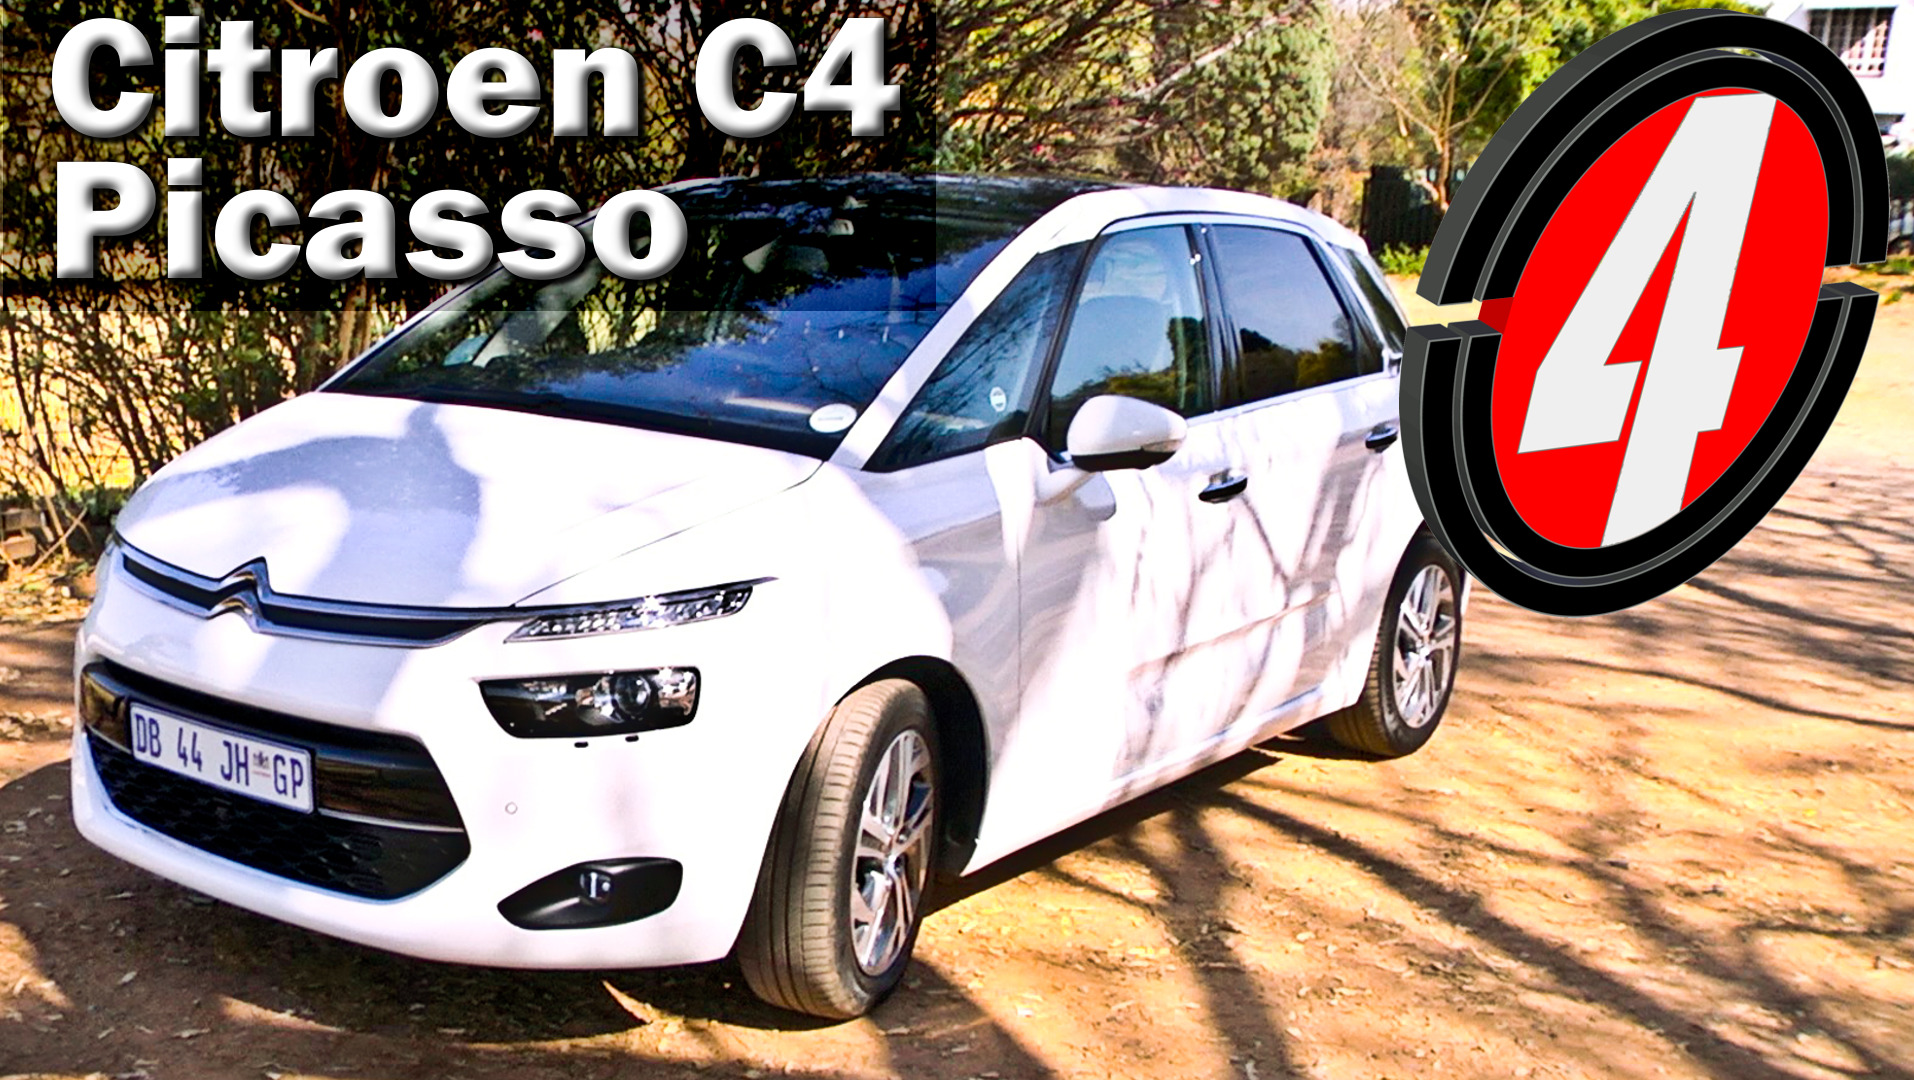 Citroen C4 Picasso (2014) : Video Review